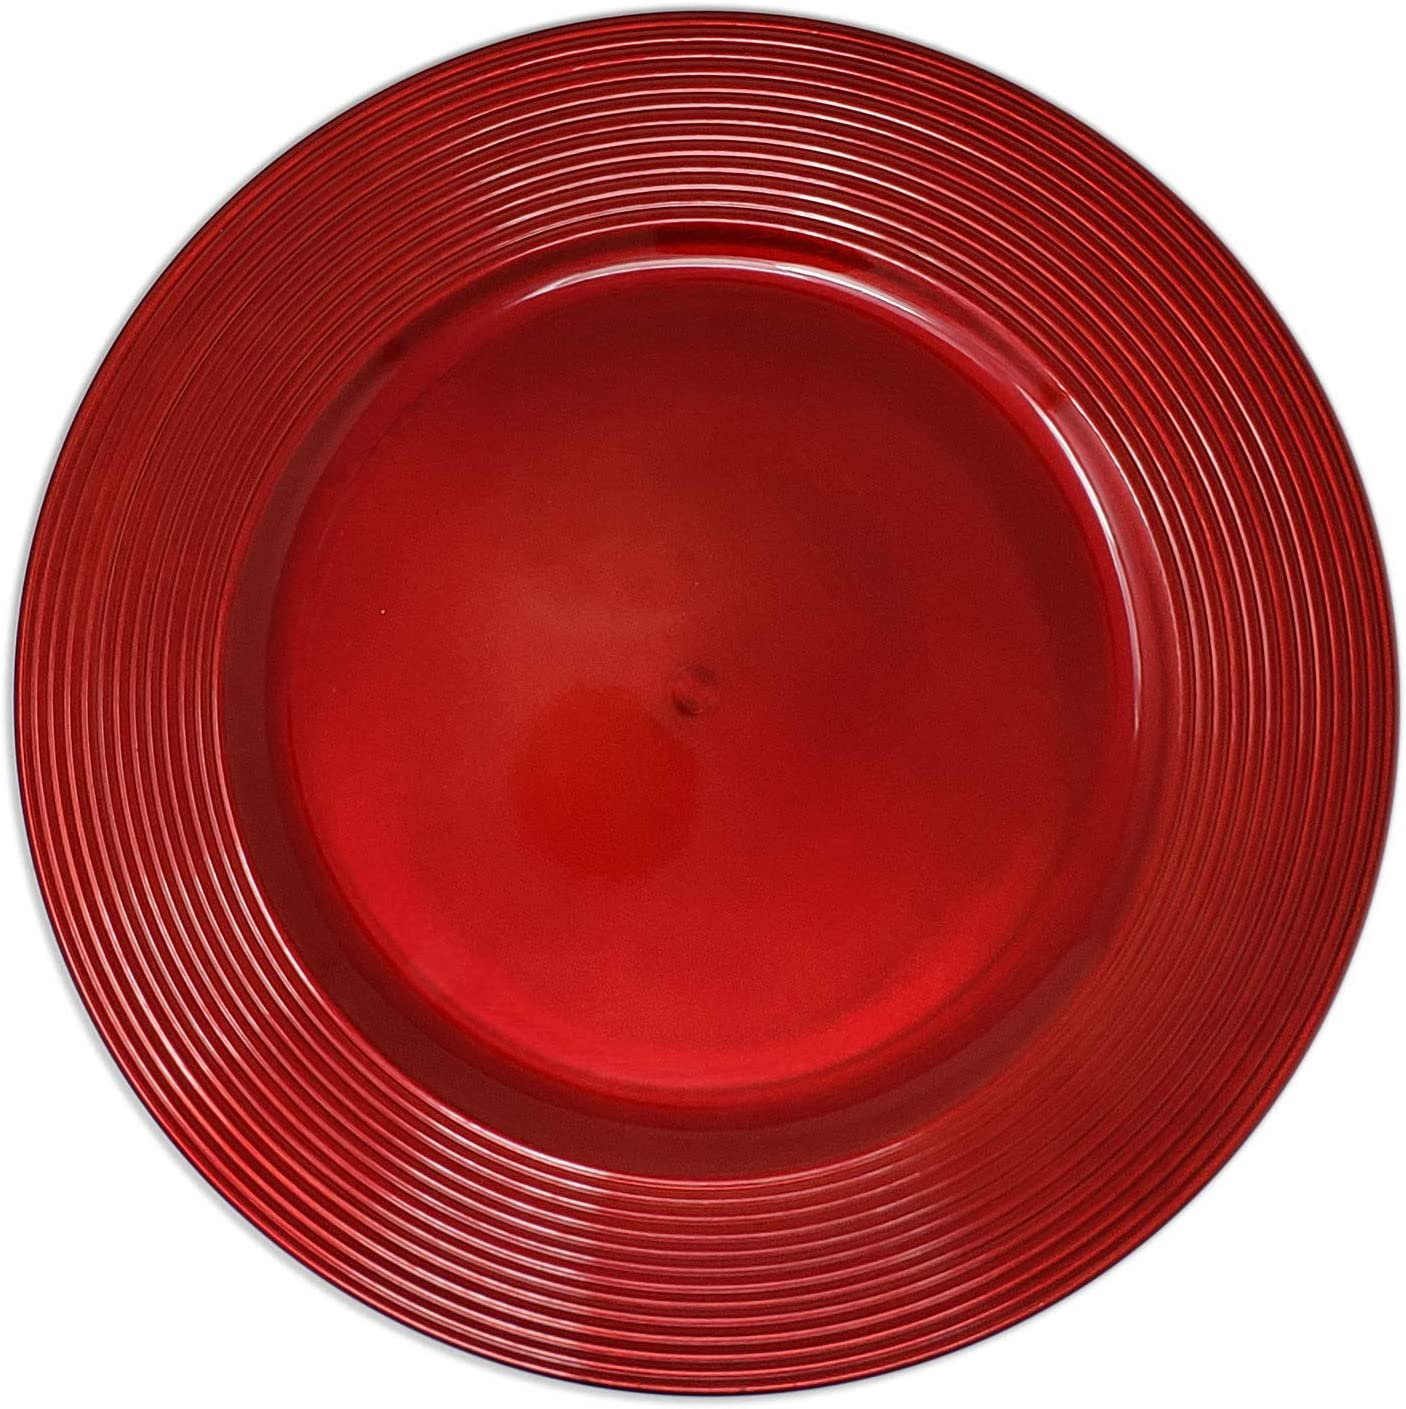 New Elegant Christmas Cherry Red Round Plate R Charger Selling 13